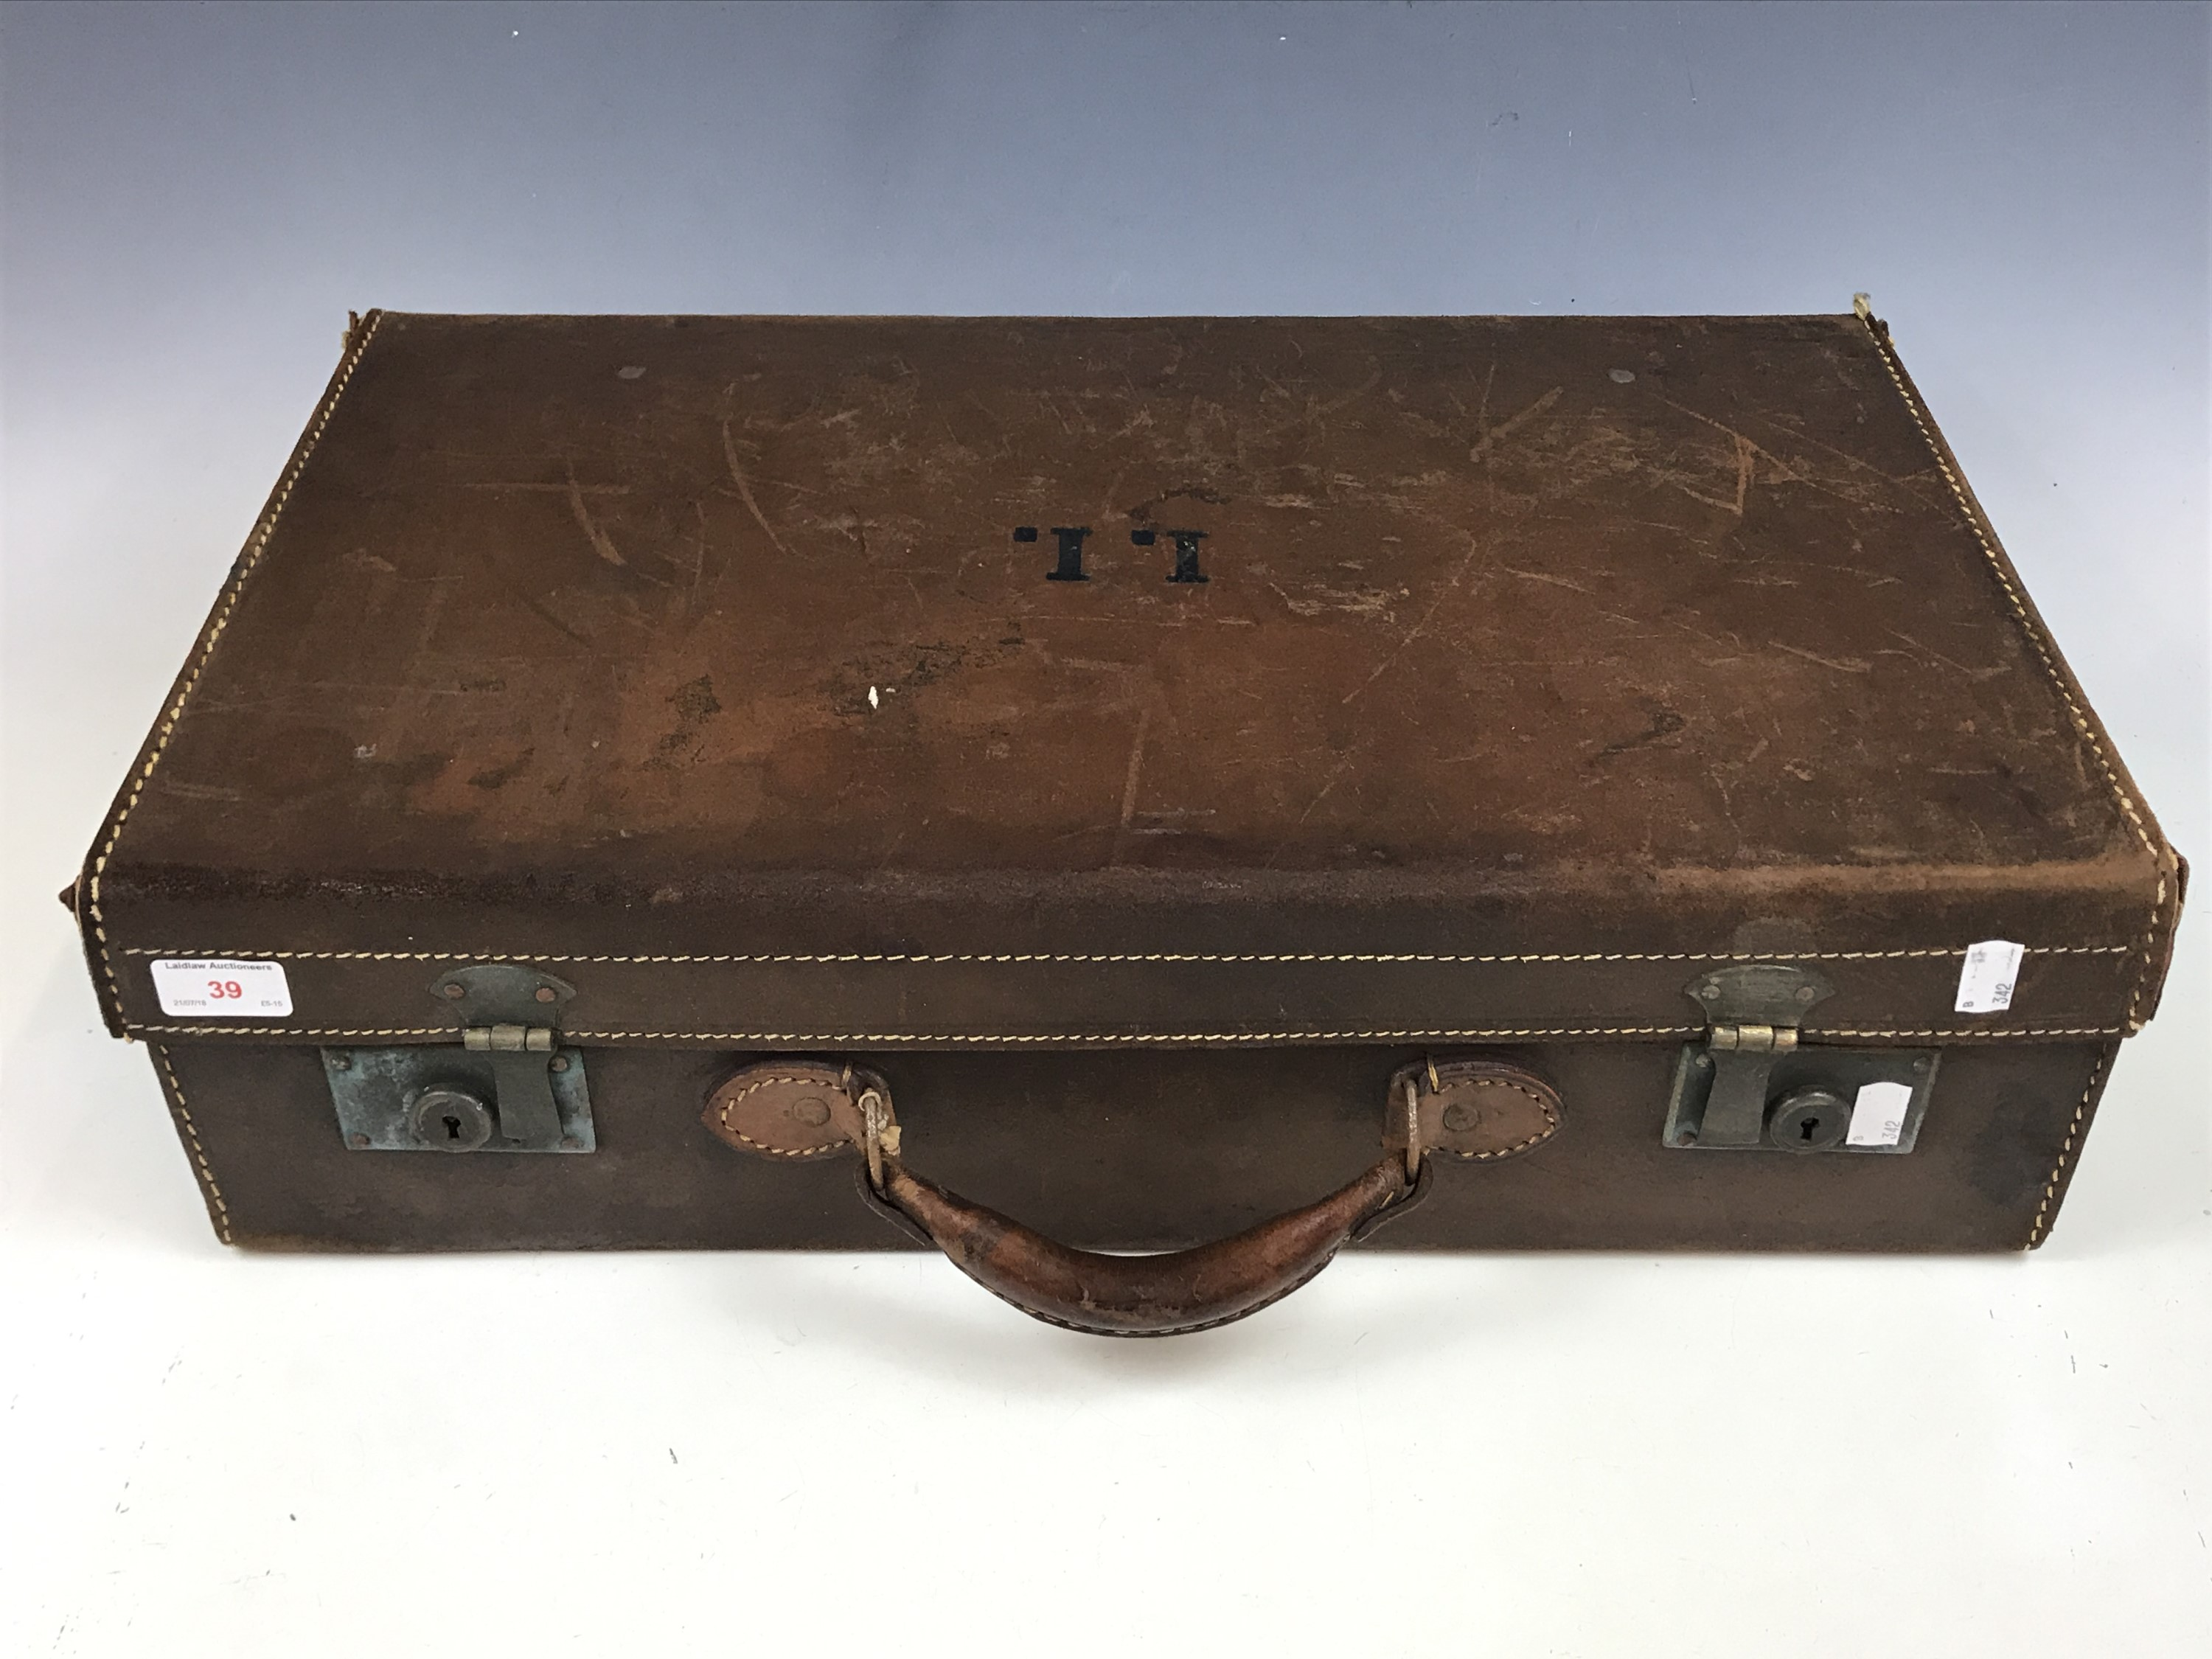 Lot 39 - A vintage hide suitcase